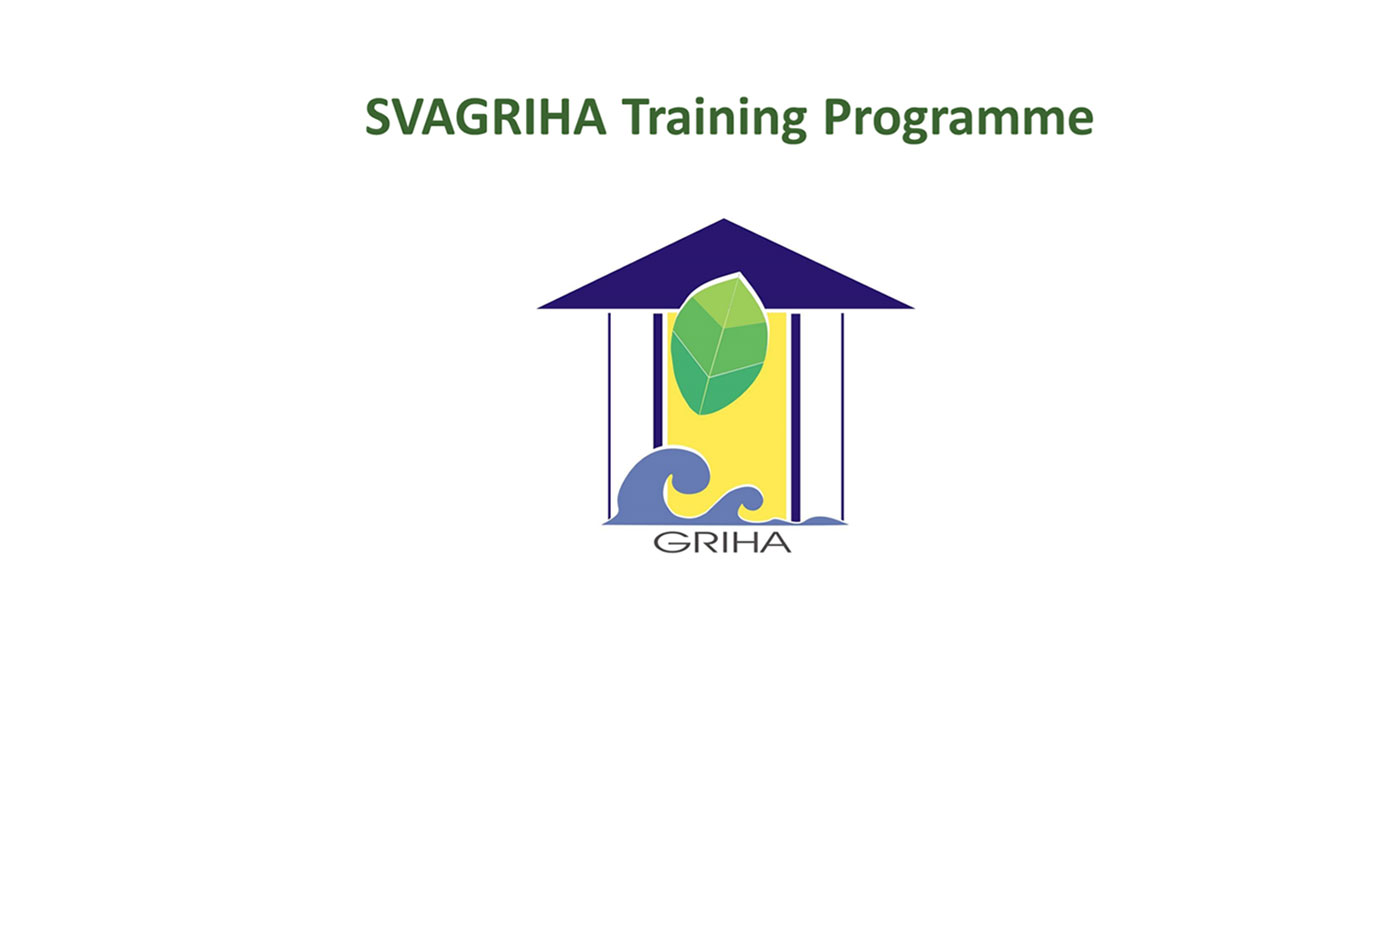 One Day SVAGRIHA Training Programme